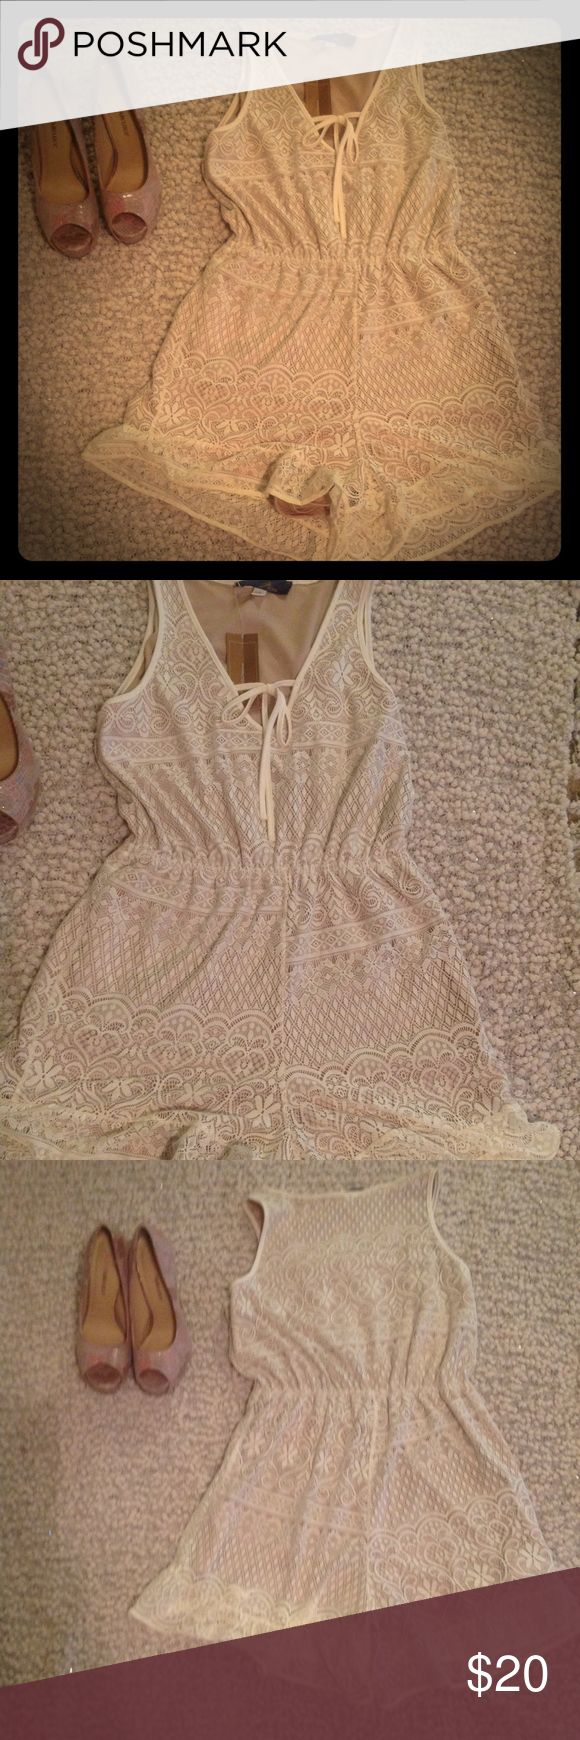 Blue Rain Eyelet romper New. Never worn. Beautiful and delicate romper. Best styled with heels or sandals. Francesca's Other